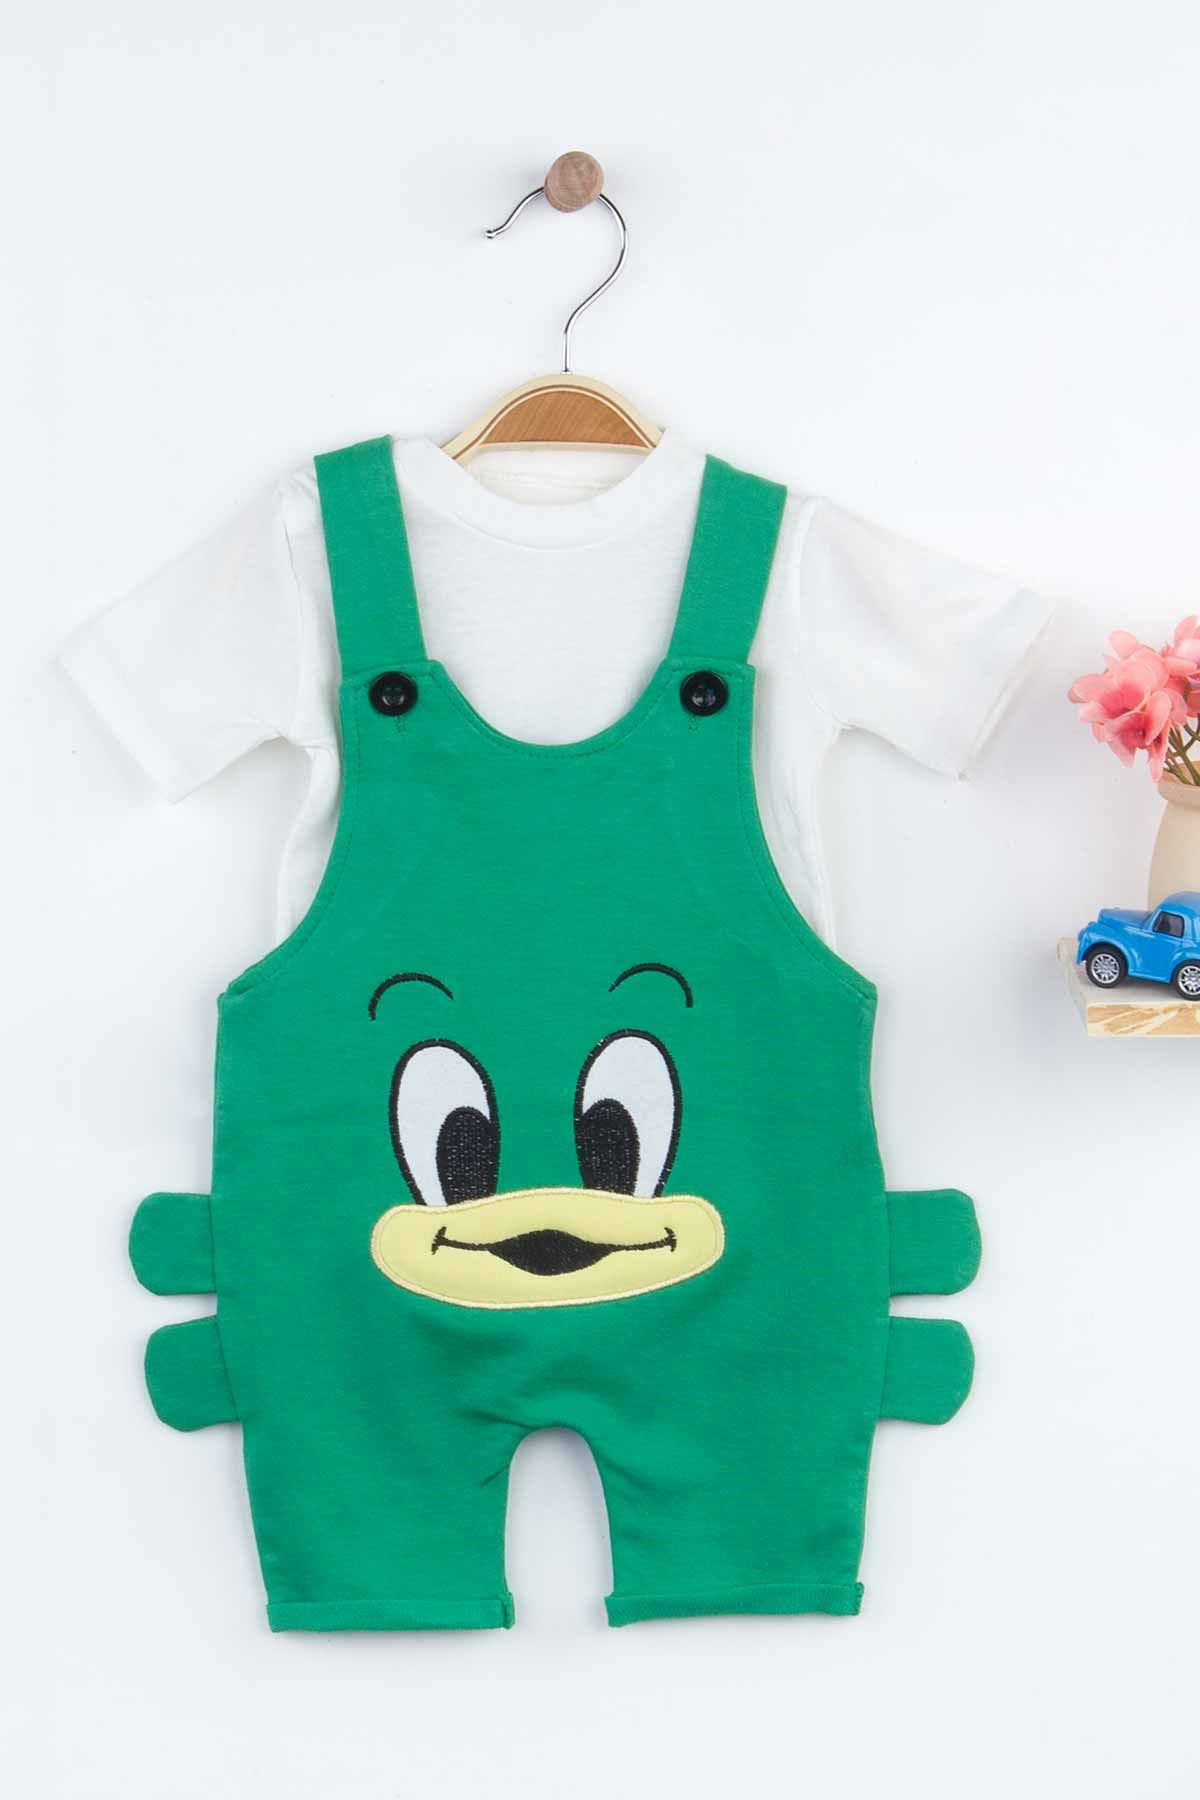 Green Baby Boy Summer Salopet Rompers Fashion 2021 New Season Style Babies Clothes Outfit Cotton Comfortable Underwear for Boys Baby